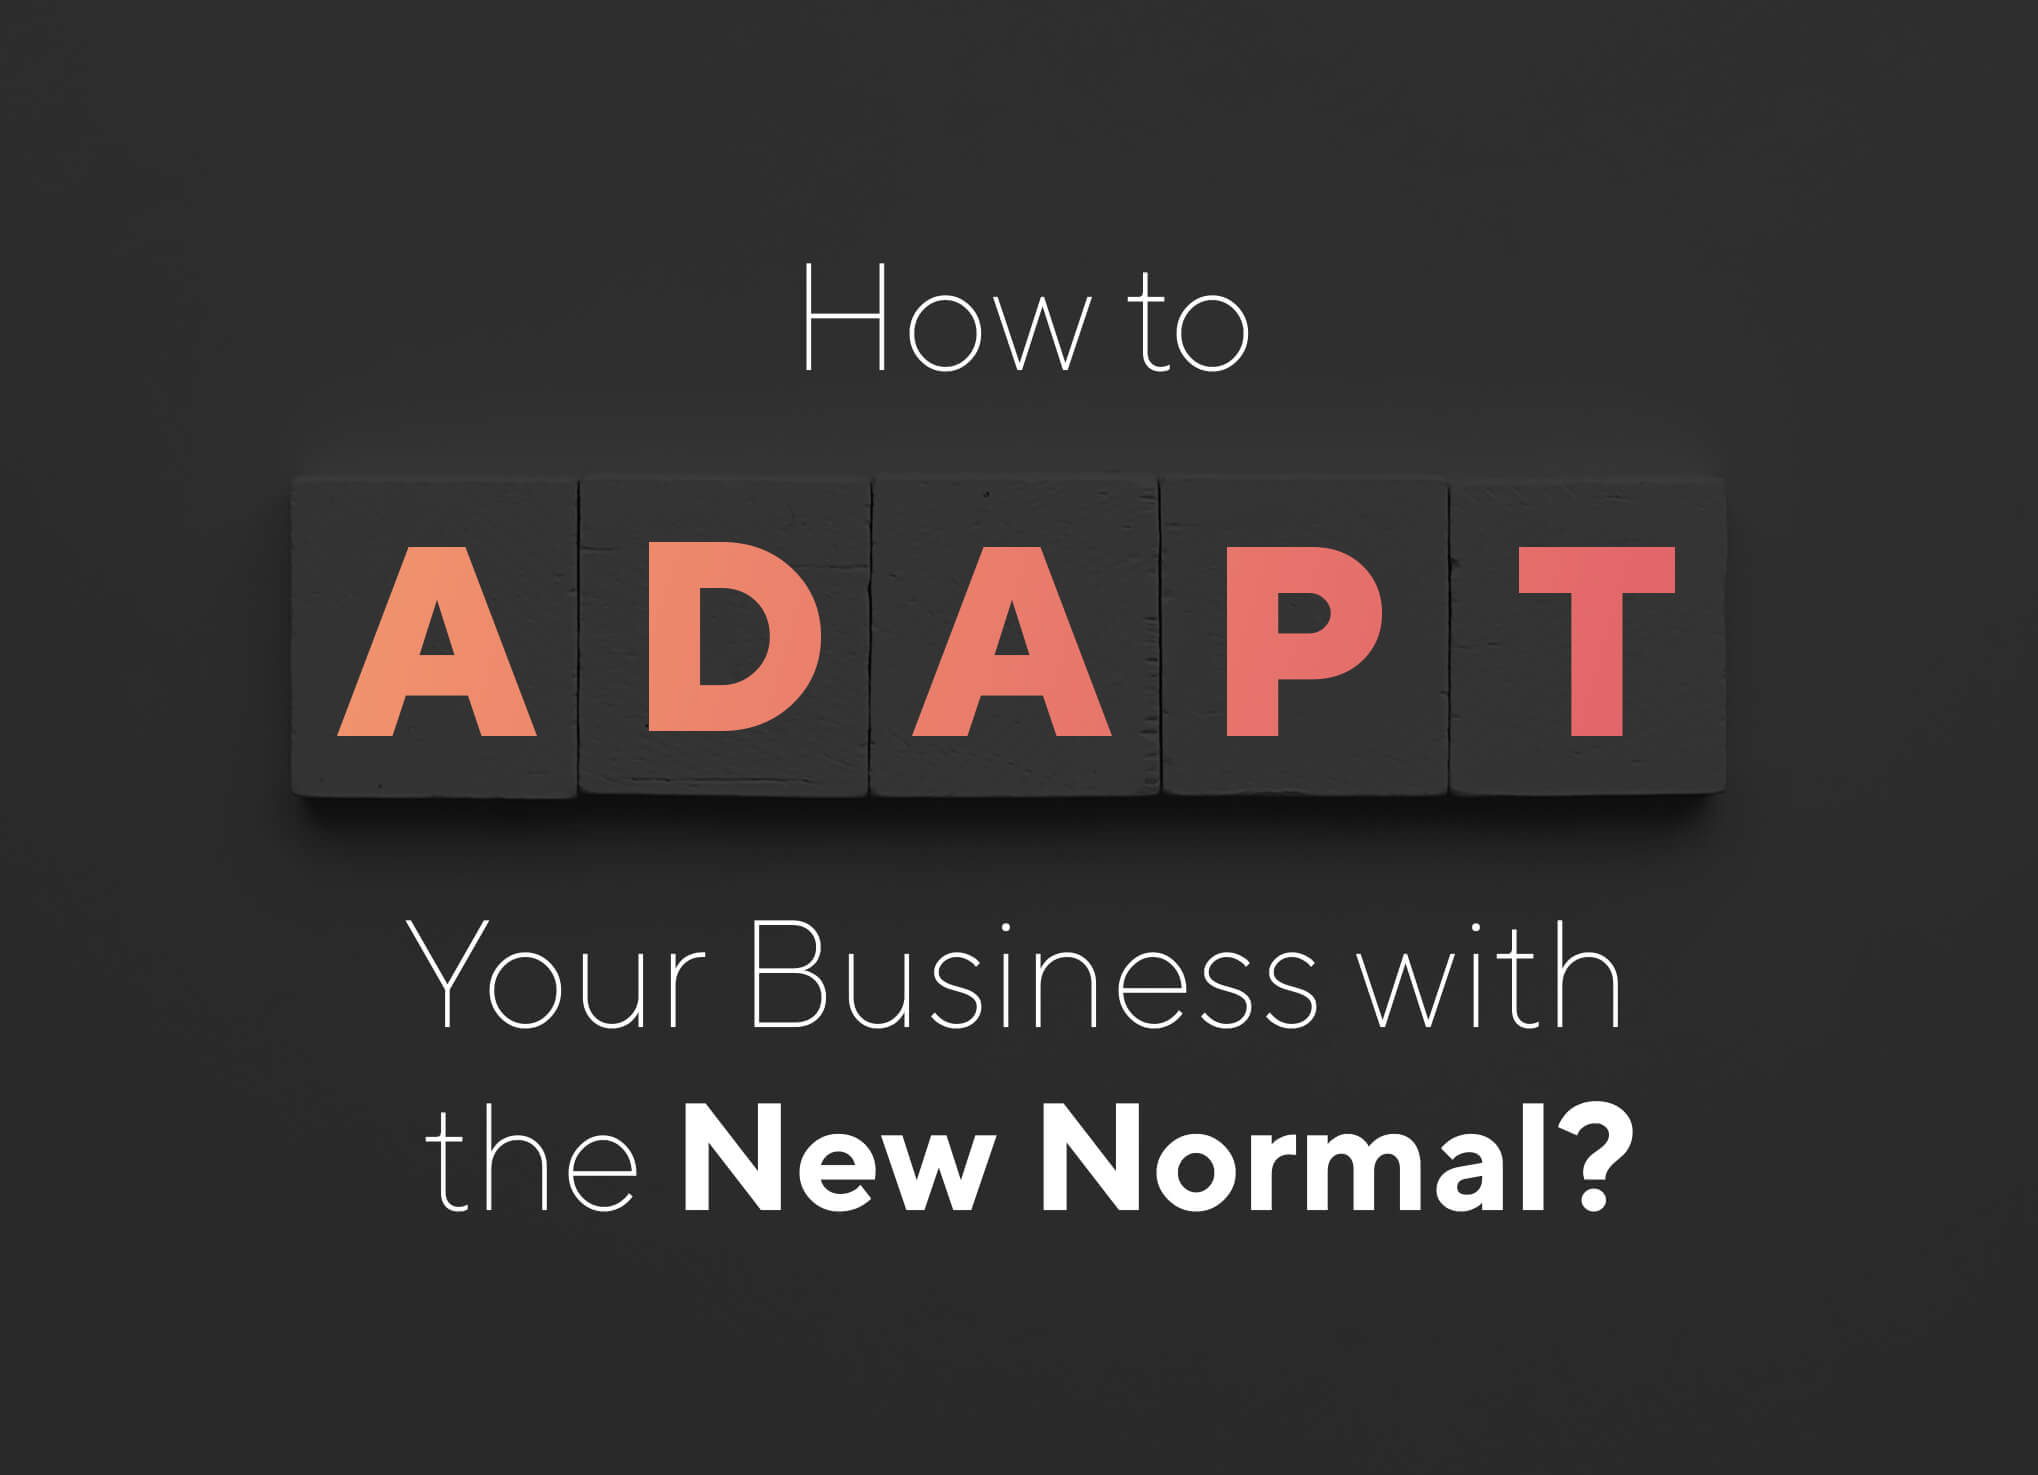 how to adapt your business with the new normal